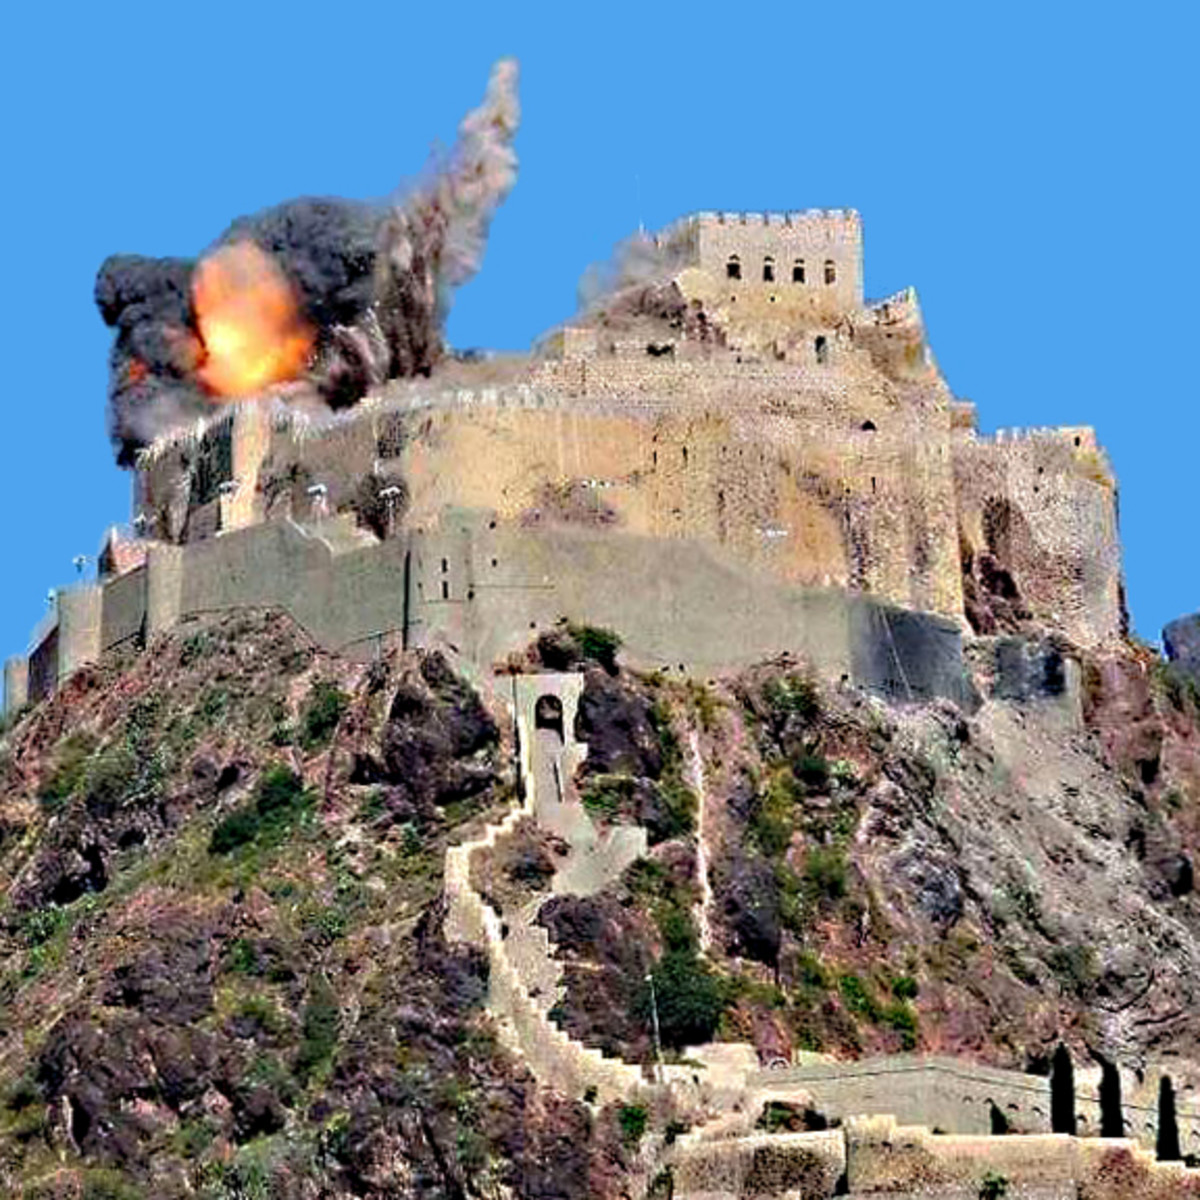 The ancient al-Qahira castle in Yemen was occupied by Shi'ite rebels. So it was targeted by a destructive airstrike